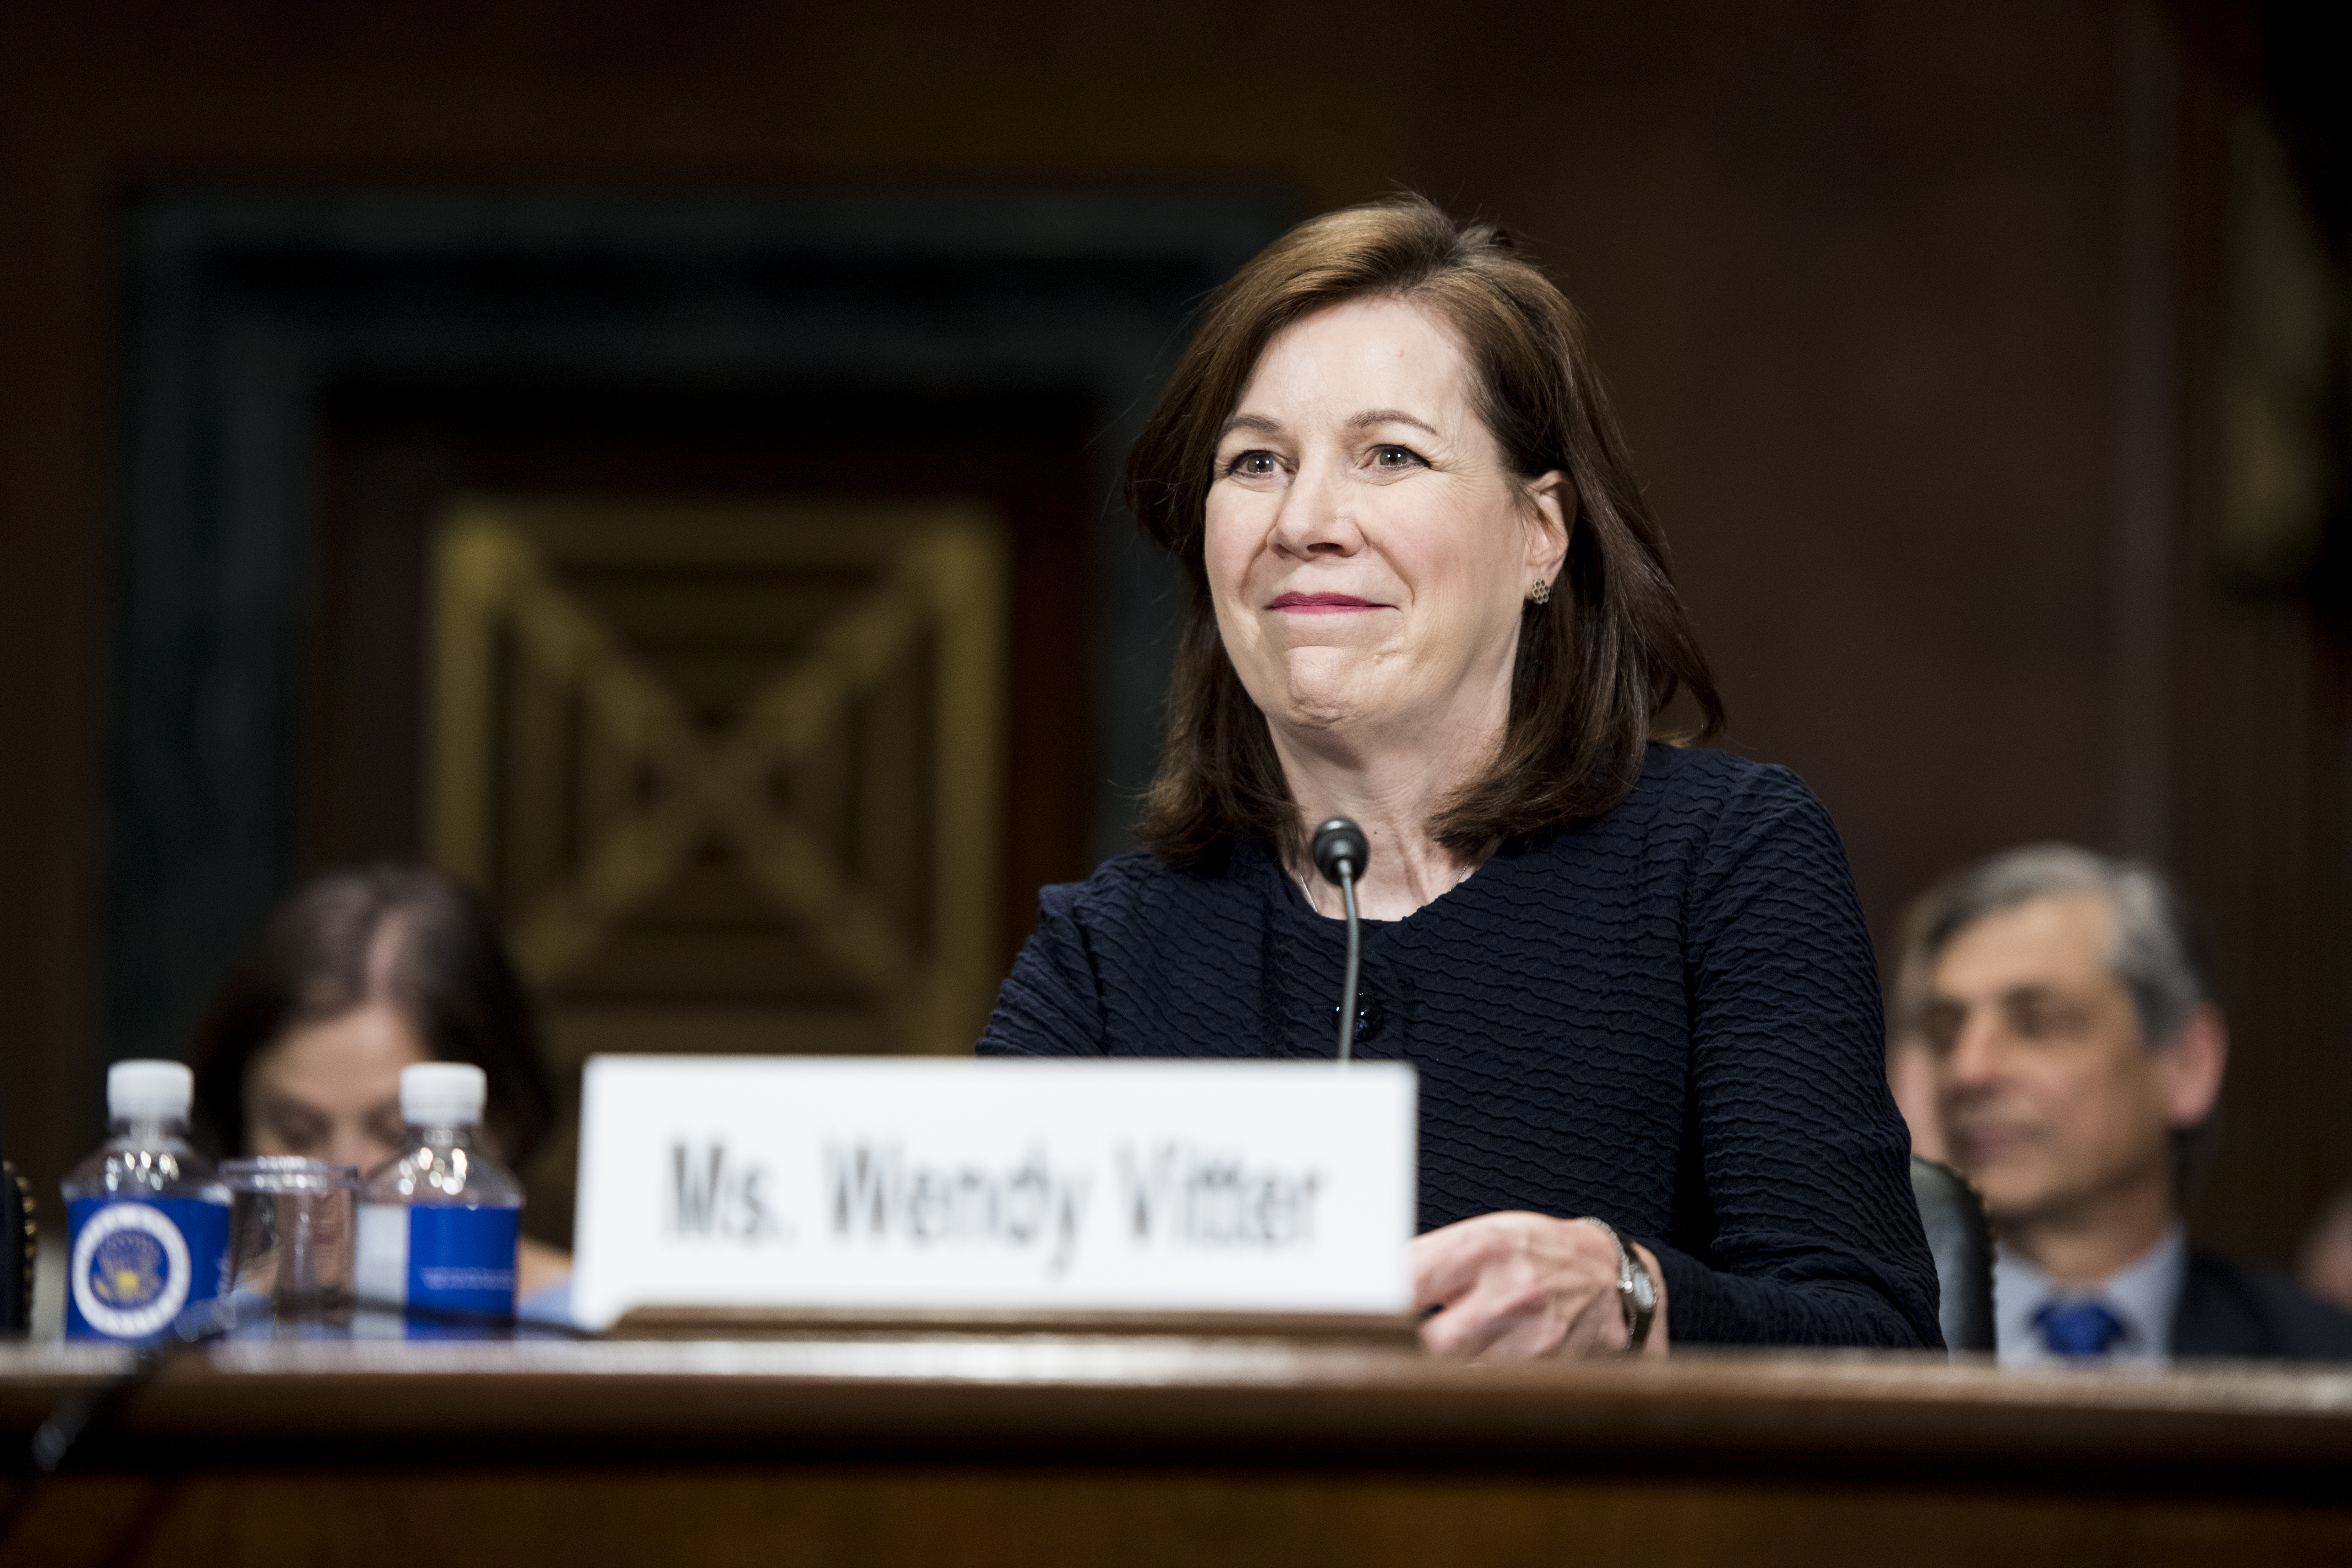 Wendy Vitter, wife of former Sen. David Vitter, testifies during her confirmation hearing in the Senate Judiciary Committee to be United States District Judge for the Eastern District of Louisiana on Wednesday, April 11, 2018.